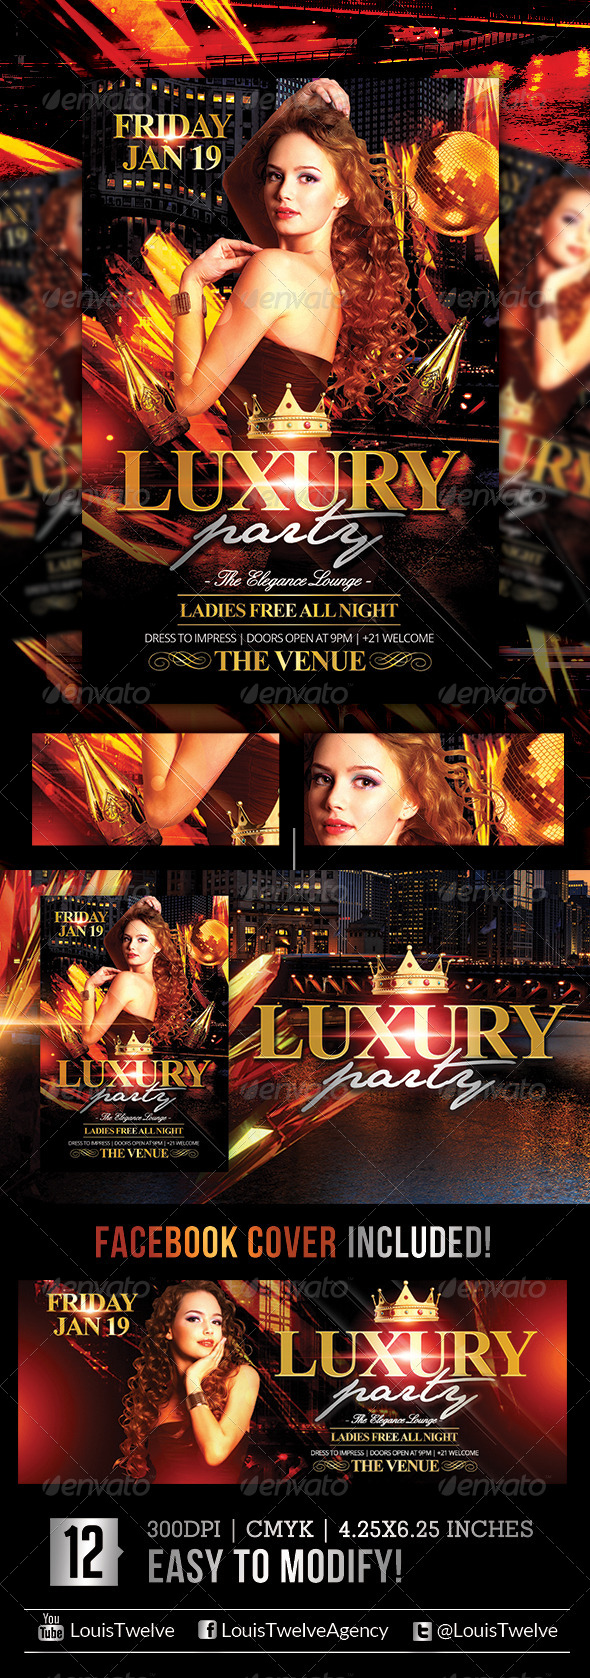 Luxury Nights Flyer & Facebook Cover